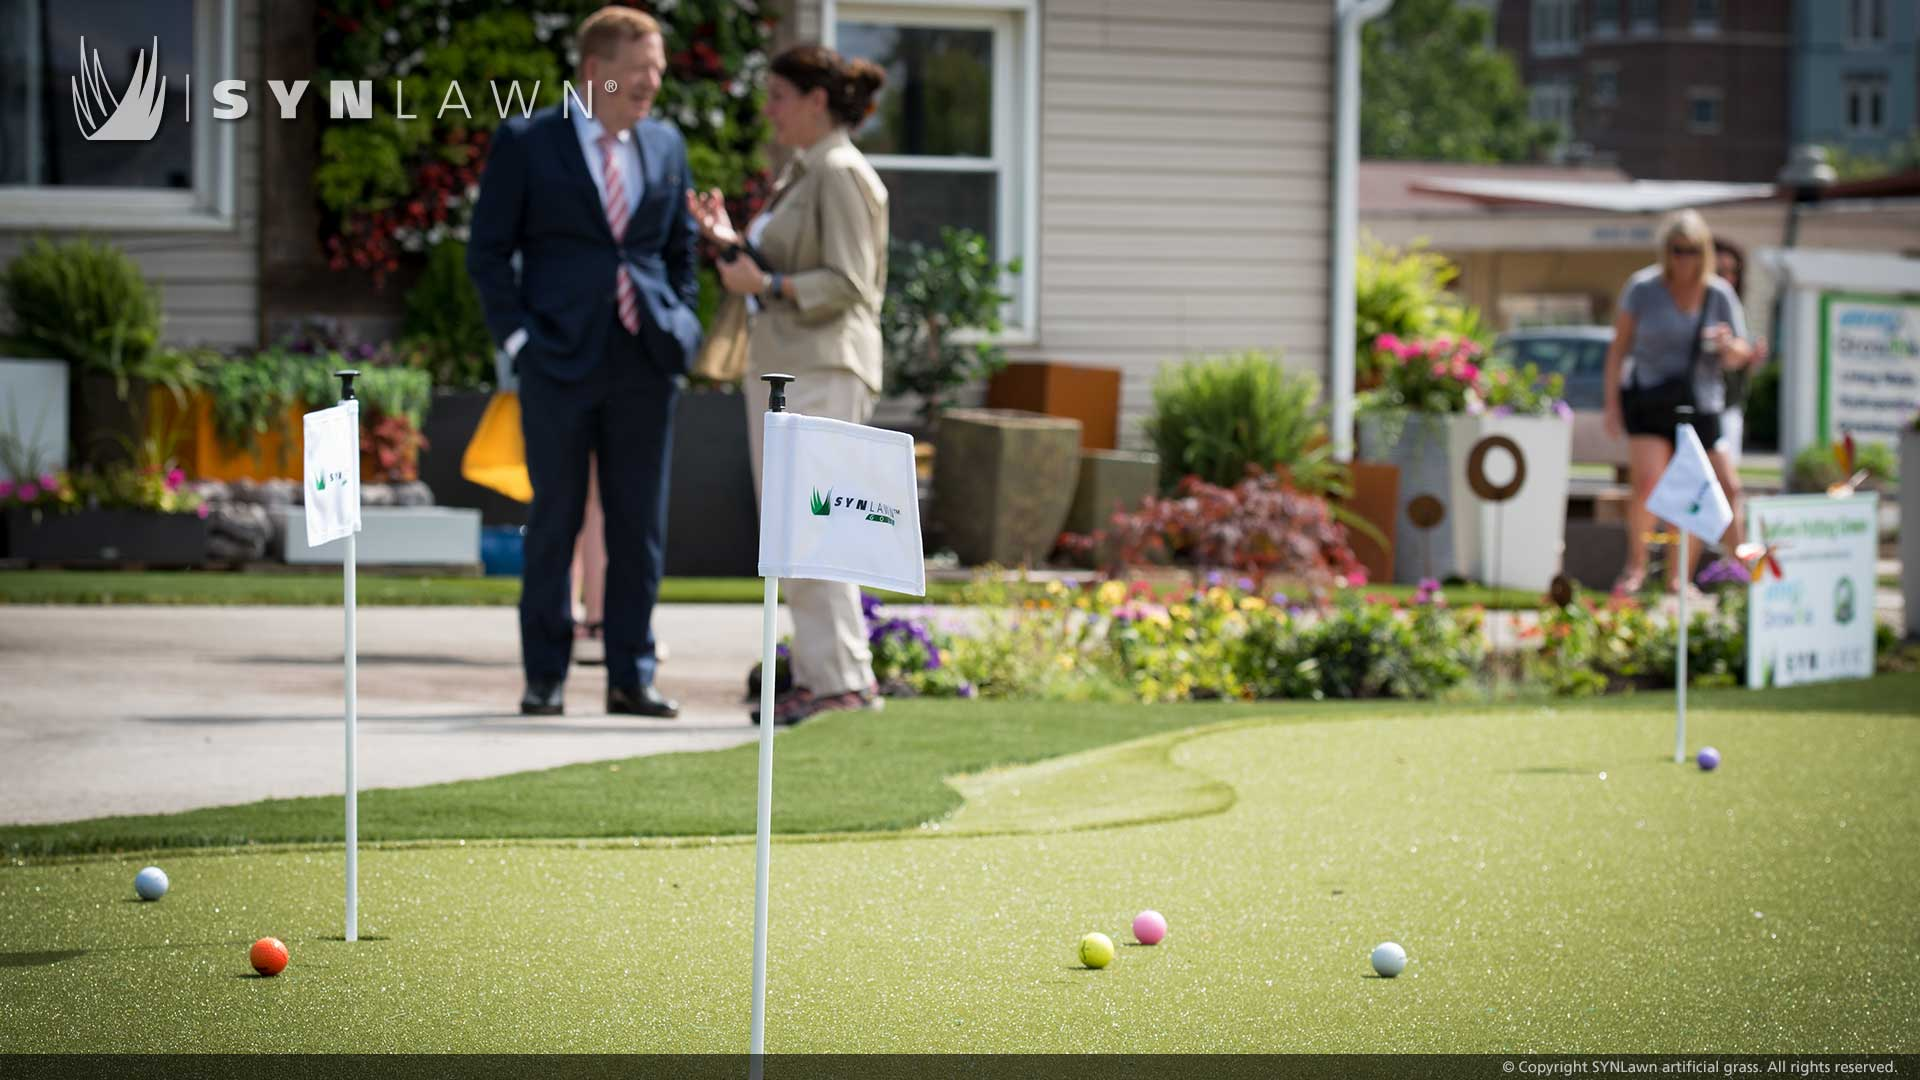 image of synlawn artificial grass putting green at great grow ins carmel indiana roundabout